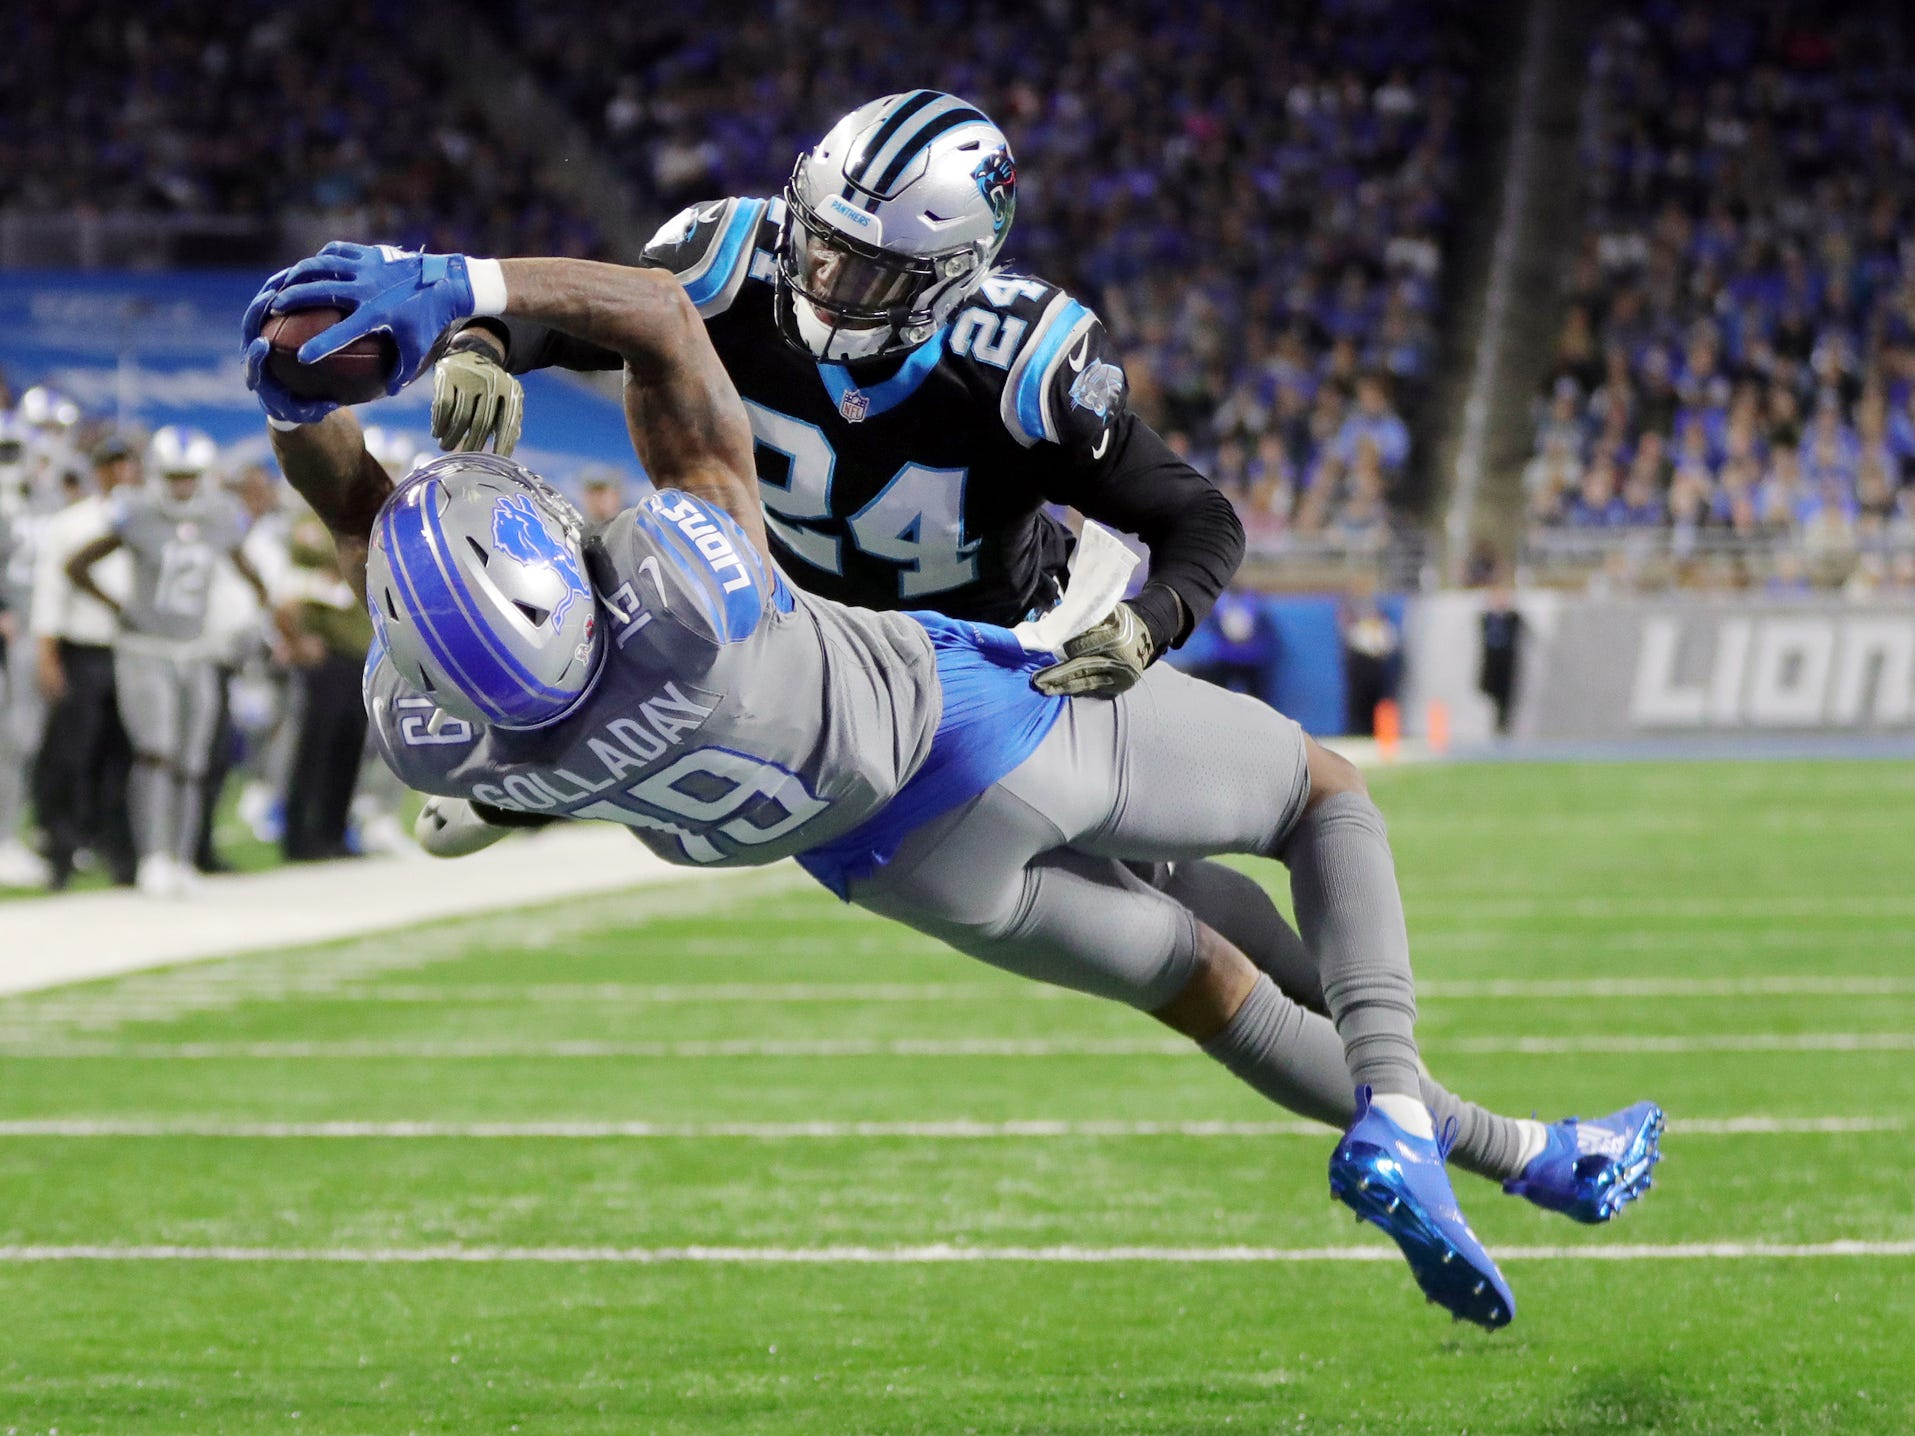 Detroit Lions receiver Kenny Golladay makes the game winning catch against Carolina Panthers cornerback James Bradberry in the second half on Sunday, November 18, 2018 at Ford Field in Detroit.